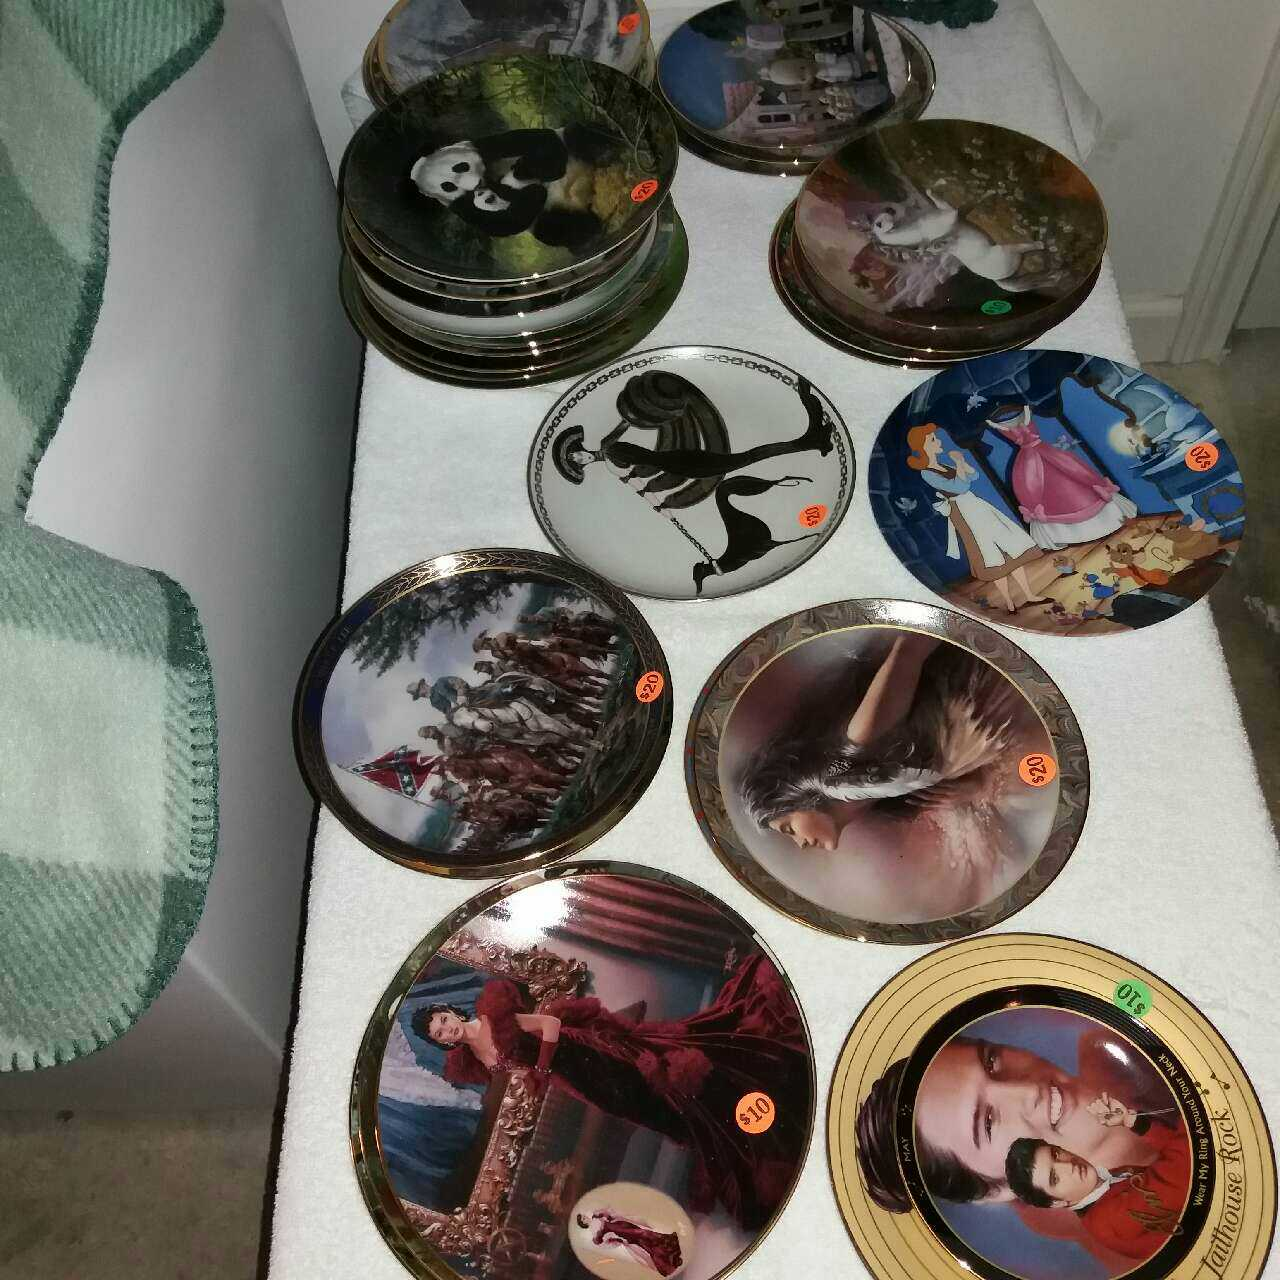 BEAUTIFUL COLLECTORS PLATES SELLING FOR $10 & $20